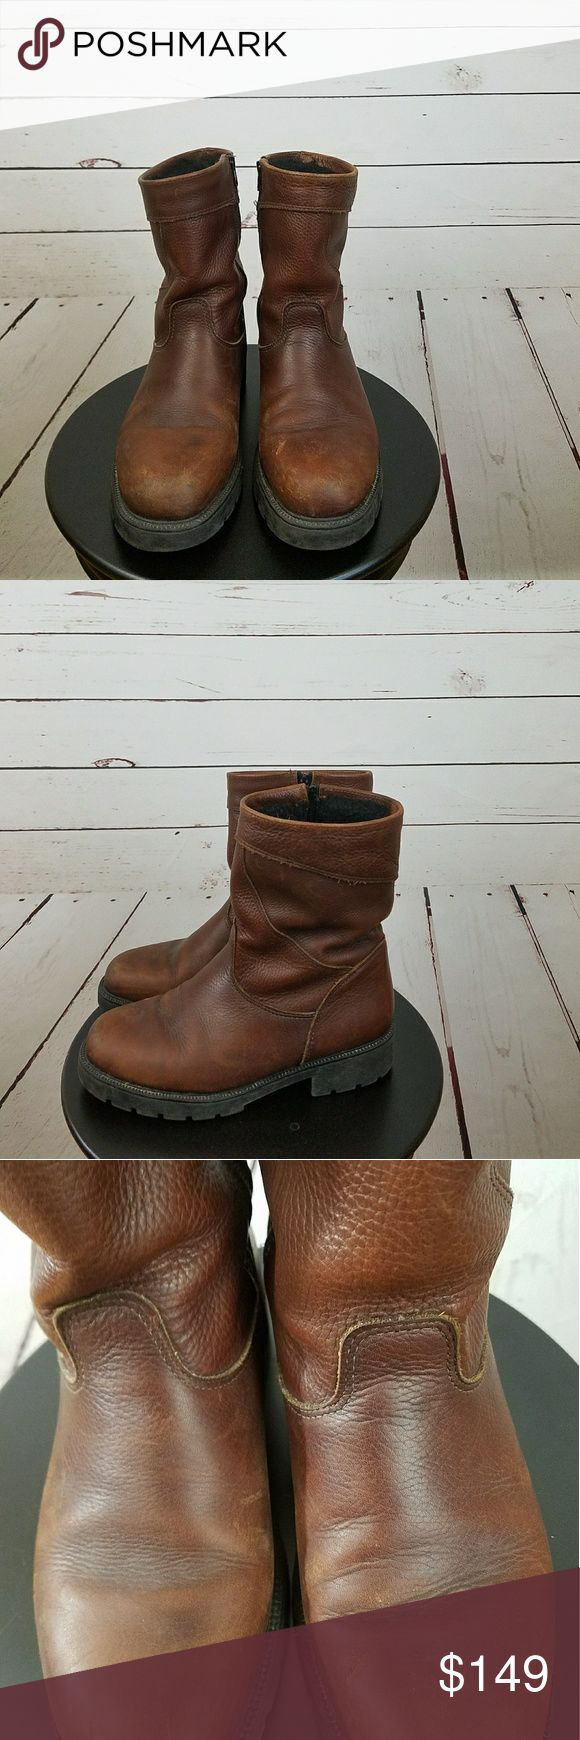 Sorel Mens Boots 8 1/2 Medium Brown Zip Side Sorel Mens Boots 8 1/2 Medium Brown Zip Side Good condition with some scuff marks on the outside. We are taking offers please no low ballers. Thanks Sorel Shoes Boots